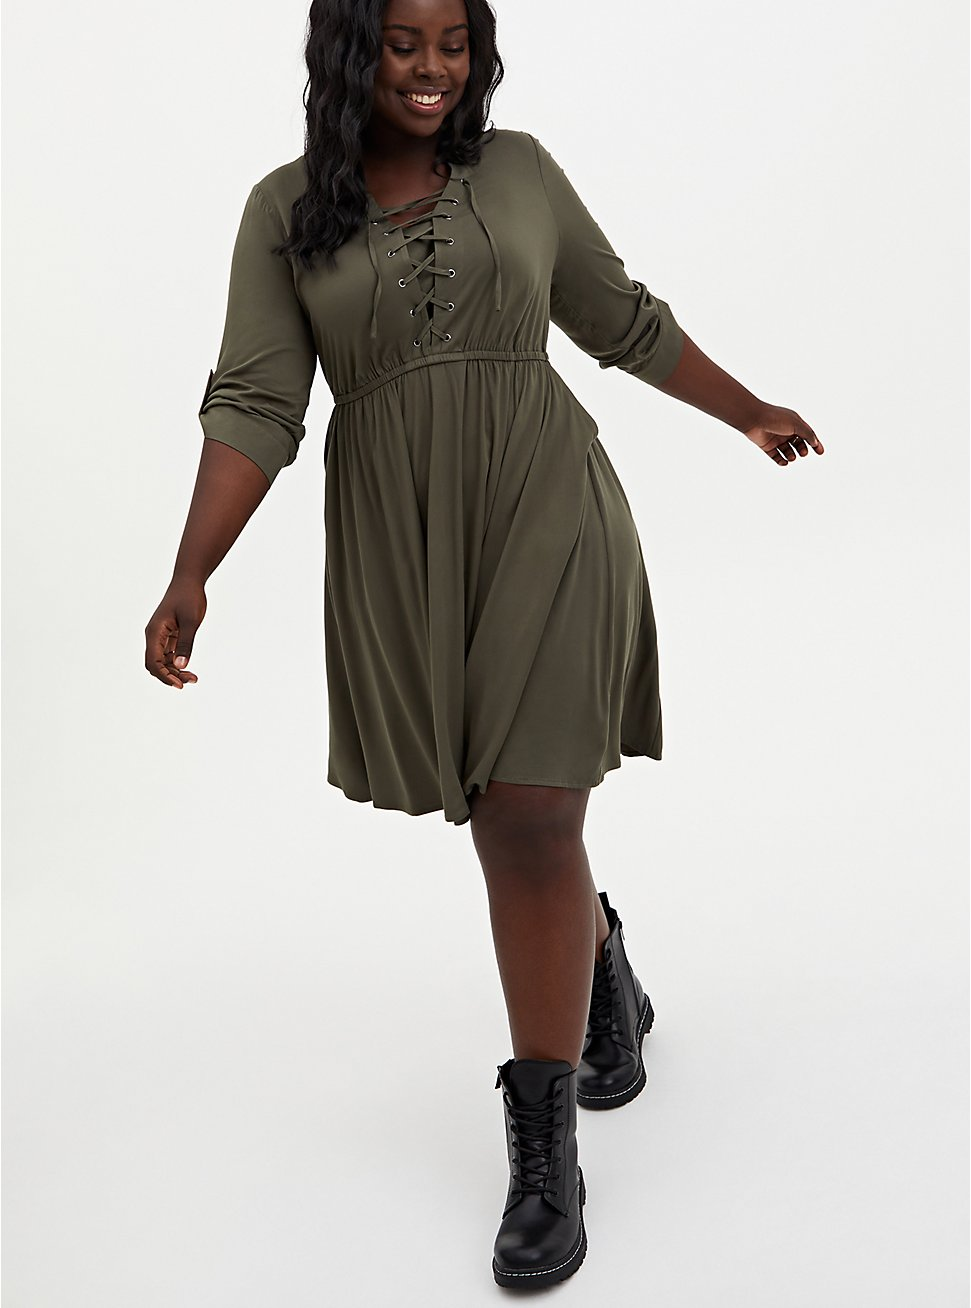 Olive Green Stretch Challis Lace-Up Shirt Dress, DEEP DEPTHS, hi-res